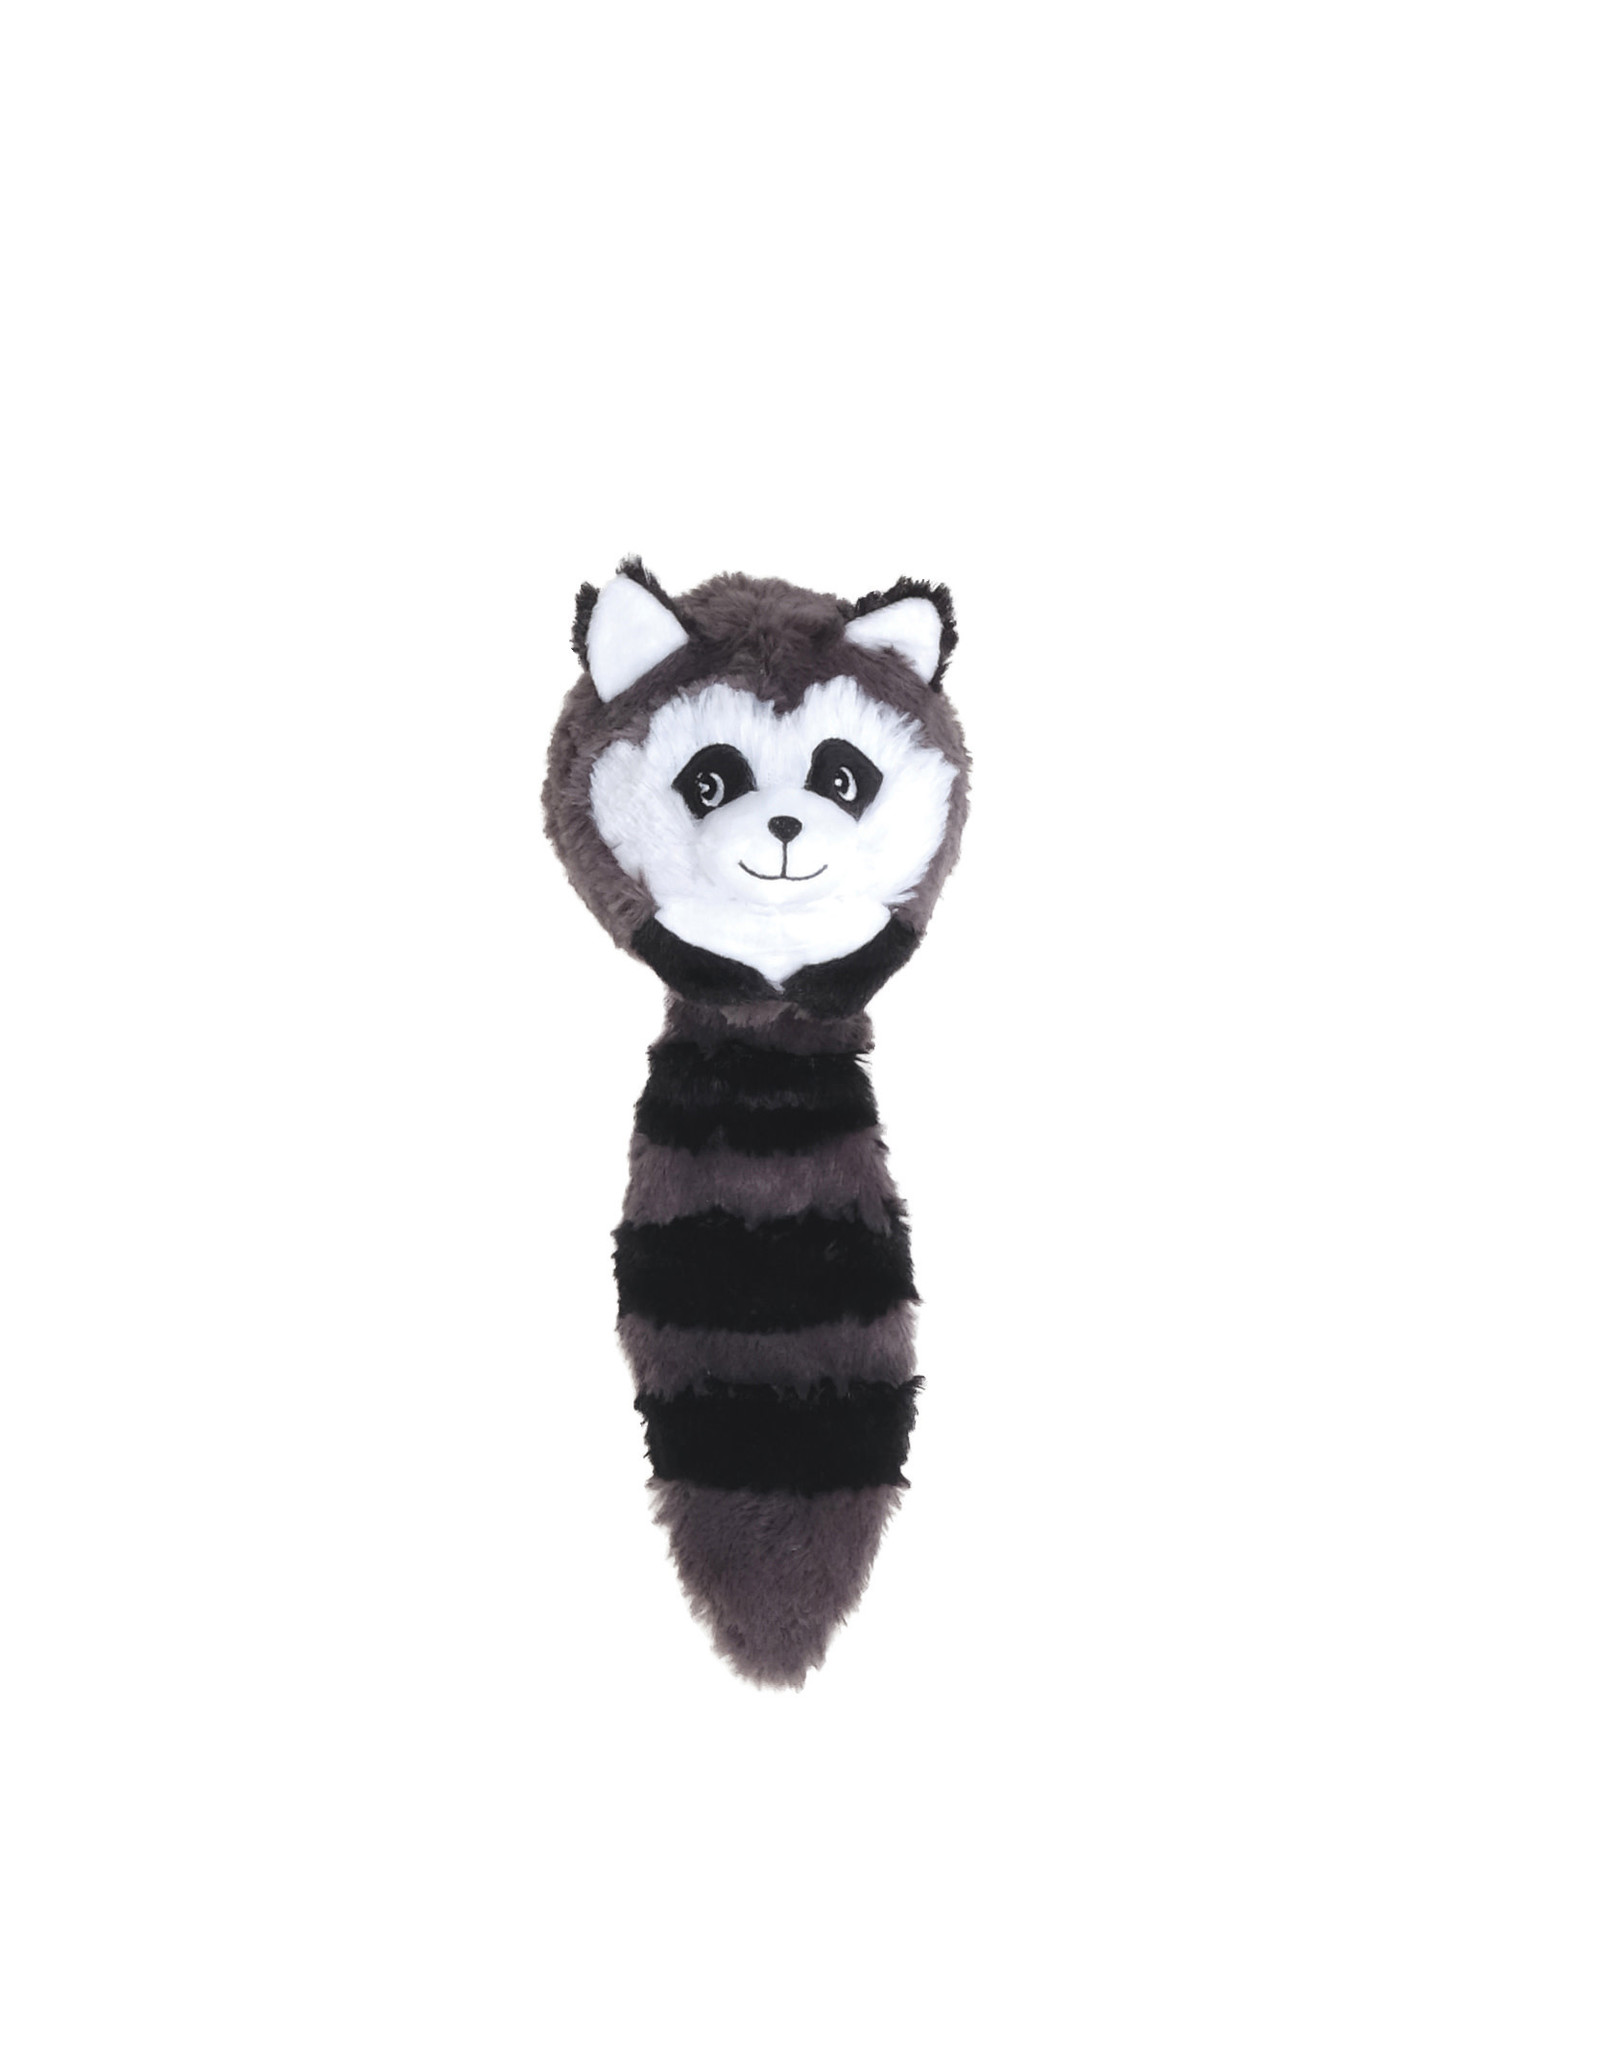 DogIt Dogit Stuffies - Forest Ball Friend - Raccoon - 32 cm (12.5 in)